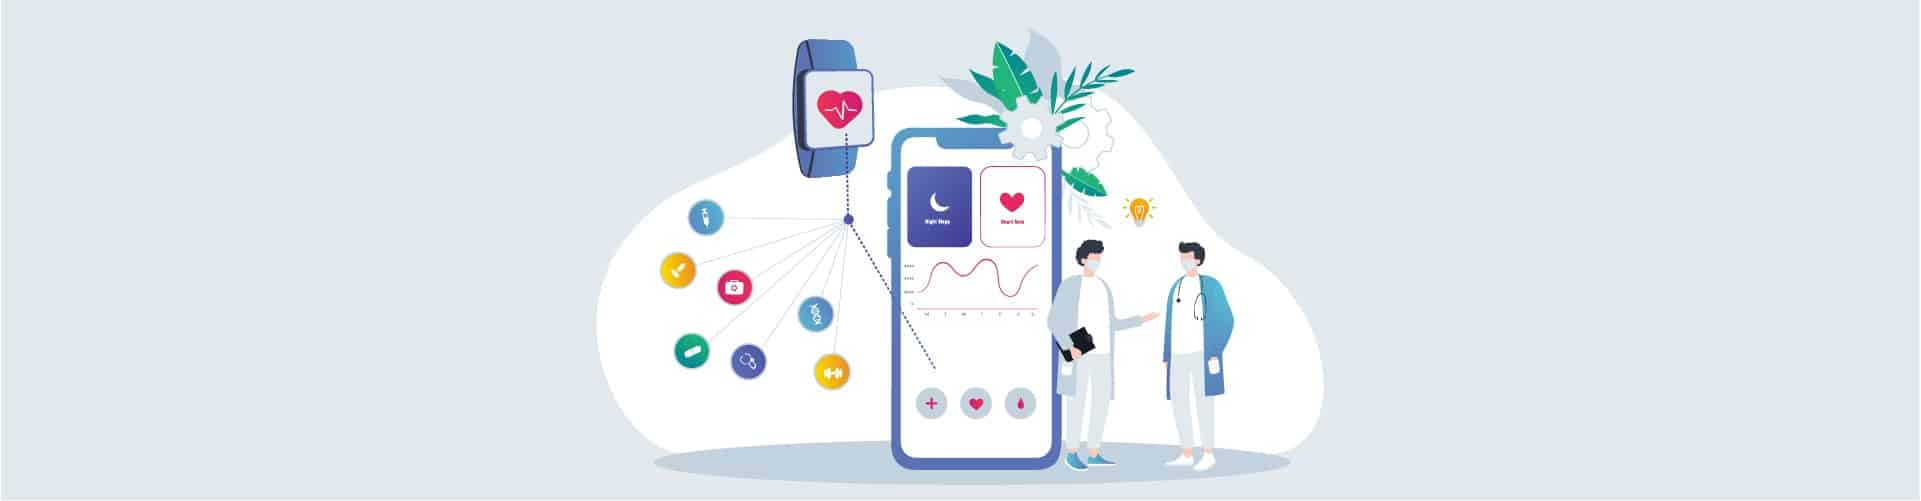 Healthcare app ideas for startups in 2021